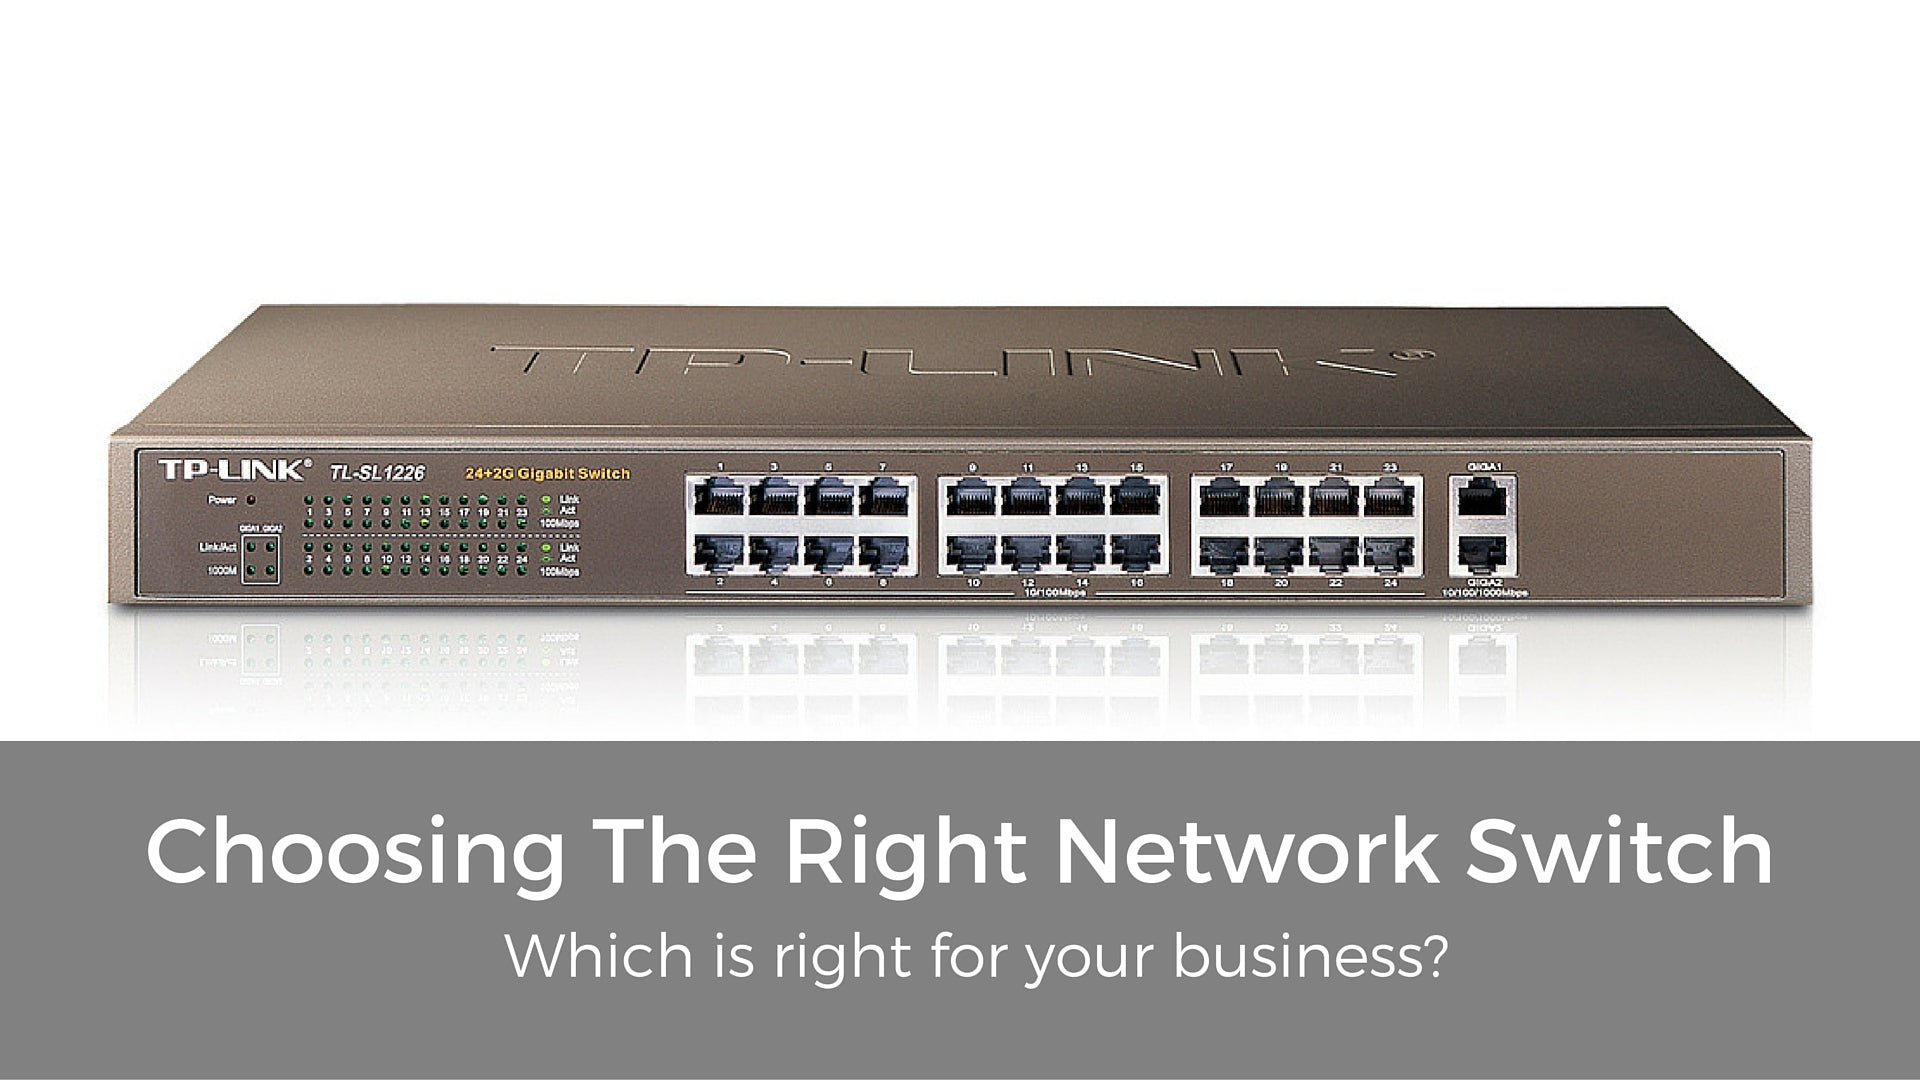 Choosing The Right Network Switch